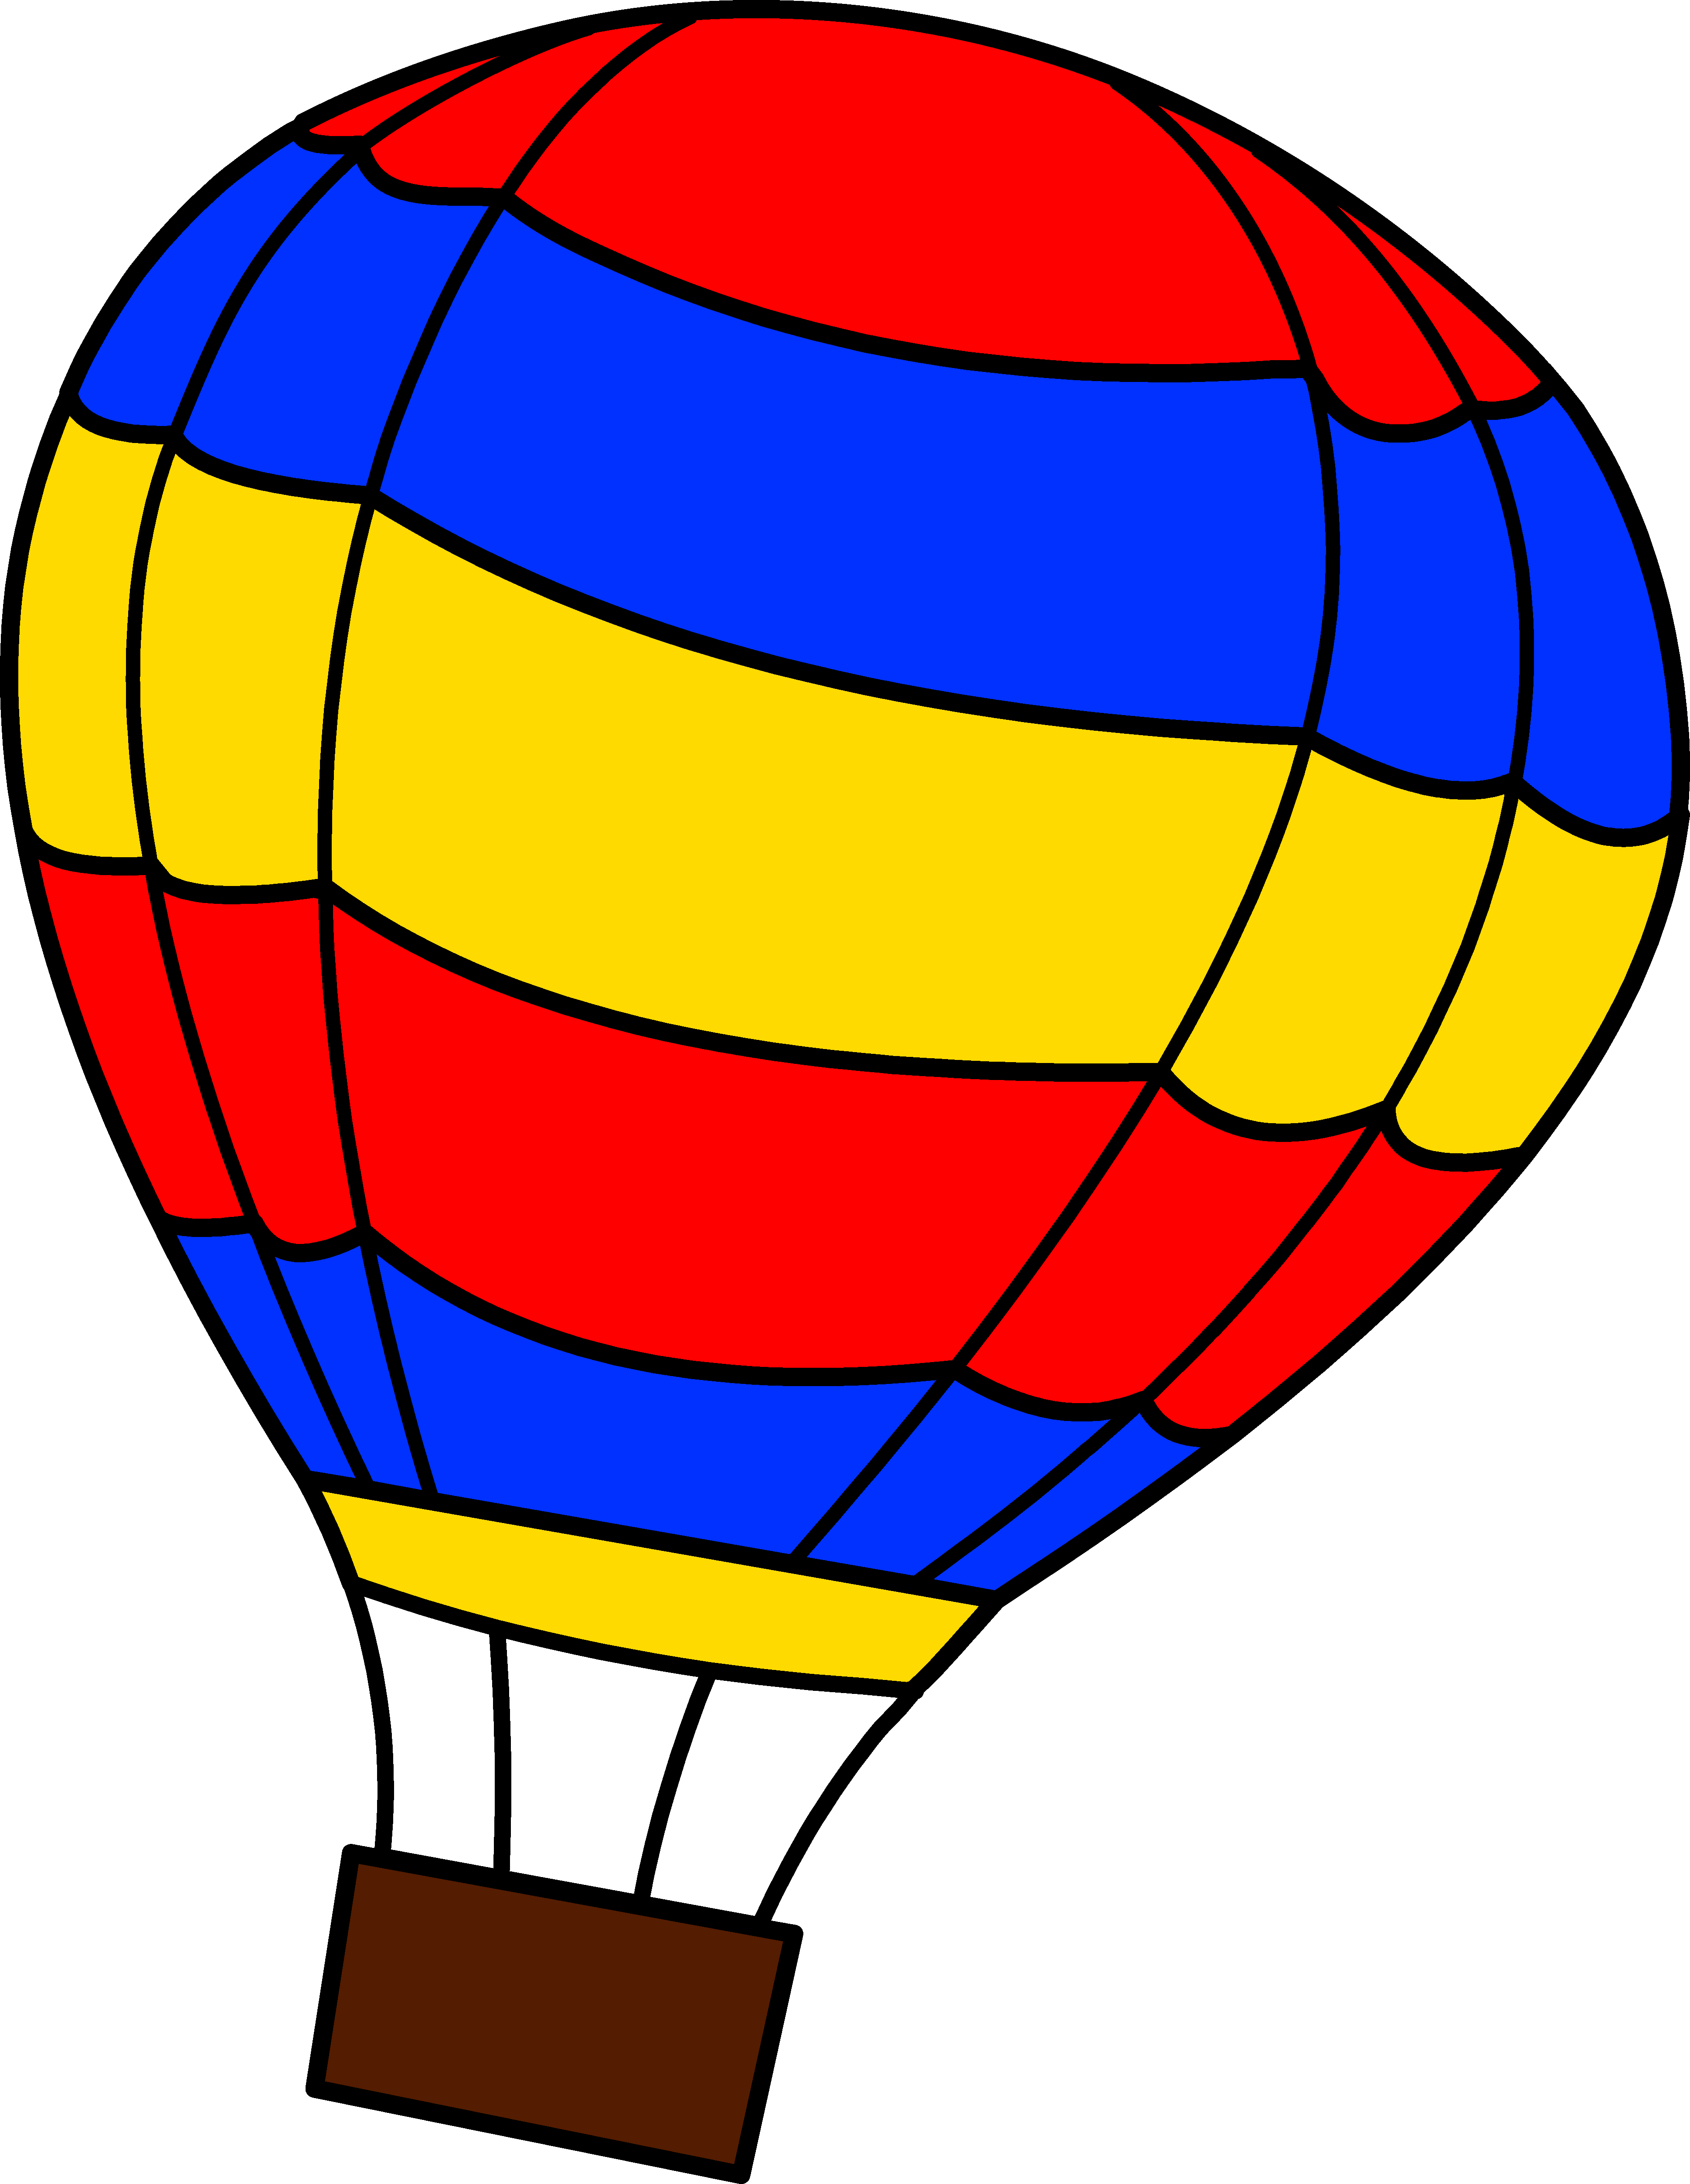 Download Air Balloon High Resolution image #46777